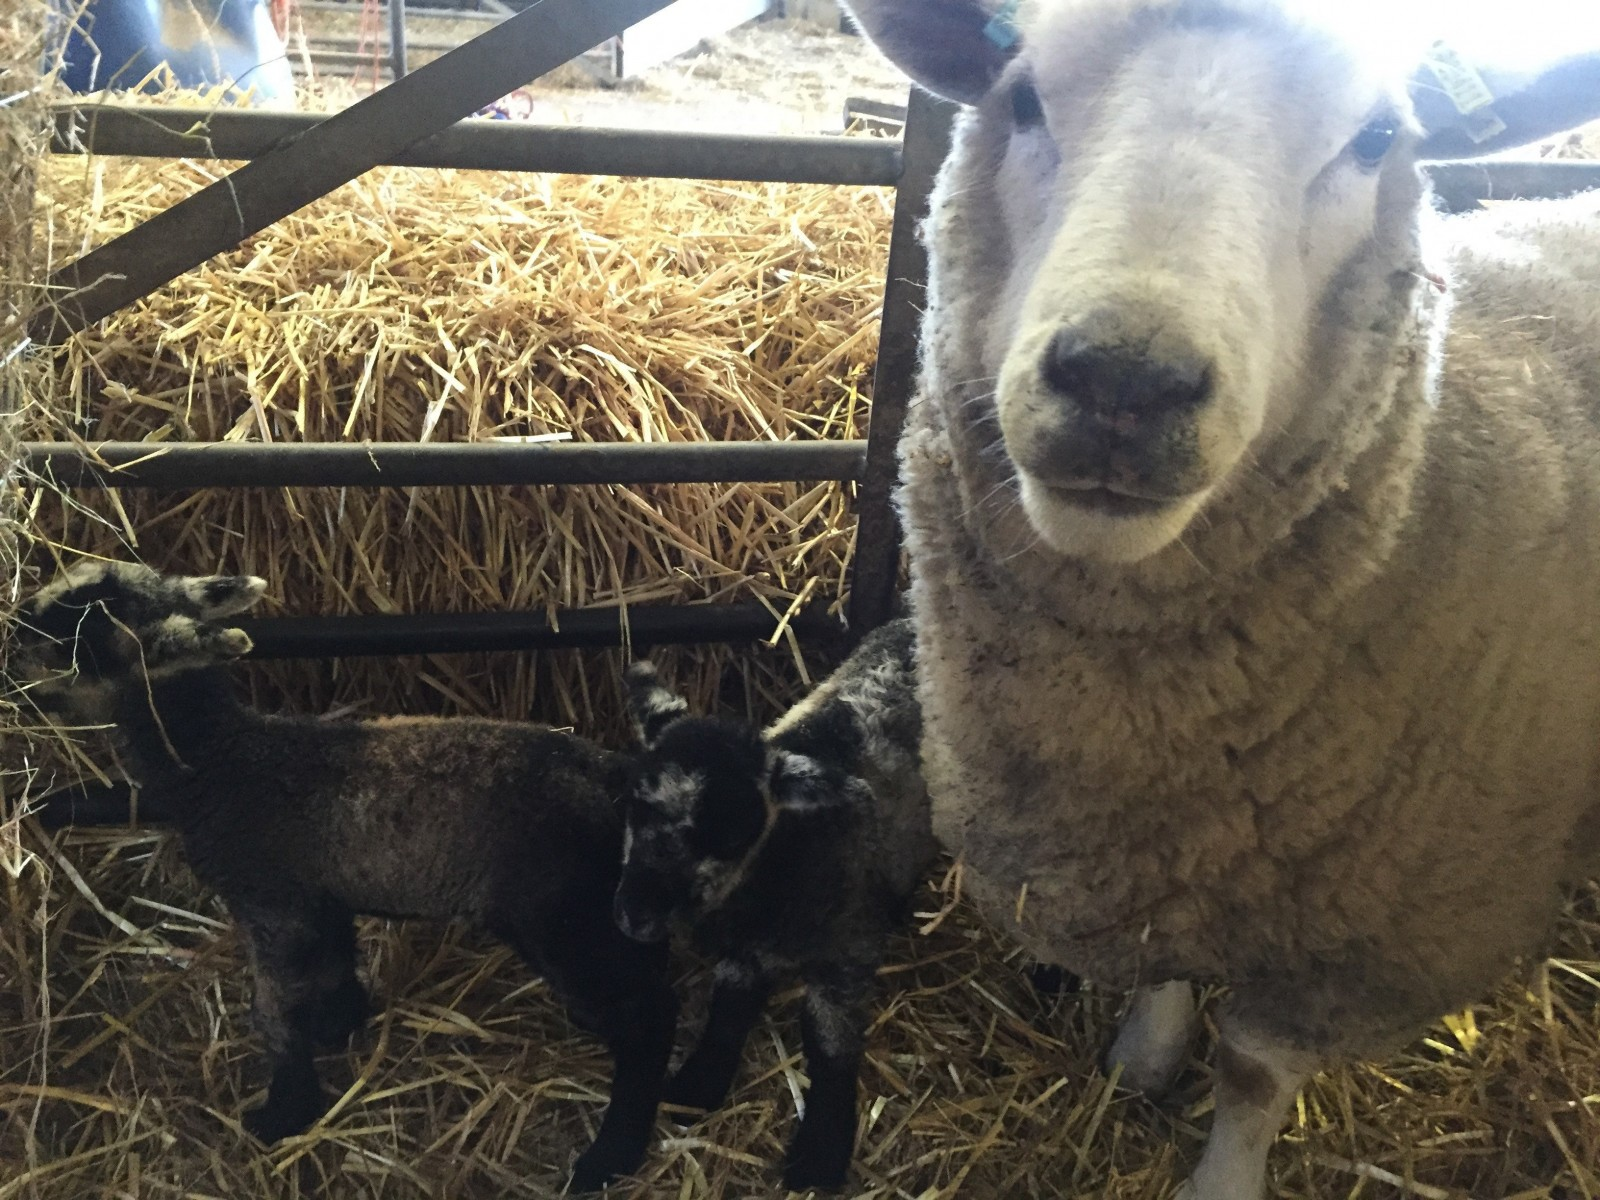 """Shirley the Dorset Ewe with her two newborn lambs. See News Team story NTIEWE; Farmers are celebrating a """"Christmas miracle"""" after a 'virgin' ewe gave birth to twin lambs. Shirley showed no signs of having mated with Dave the ram and a recent ultrasound scan came back negative. Staff at White Post Farm in Farnsfield, Notts., were stunned when they found her nursing the little lambs in her pen when they turned up for work at 7.30am on Wednesday (23/12). Spokesman for the farm Anthony Moore said yesterday (Thurs): """"As far as we're concerned it's a Christmas miracle.  PICTURES - Mark Lee INFO MUST WIRE PICS ASAP FOR INTER WEB  - A ewe was scanned to see if it was pregnant but it came back negative – but today it has given birth to twins – one black one white. Contact Anthony: 01623882977 Booked by Rachel: 07710505138"""